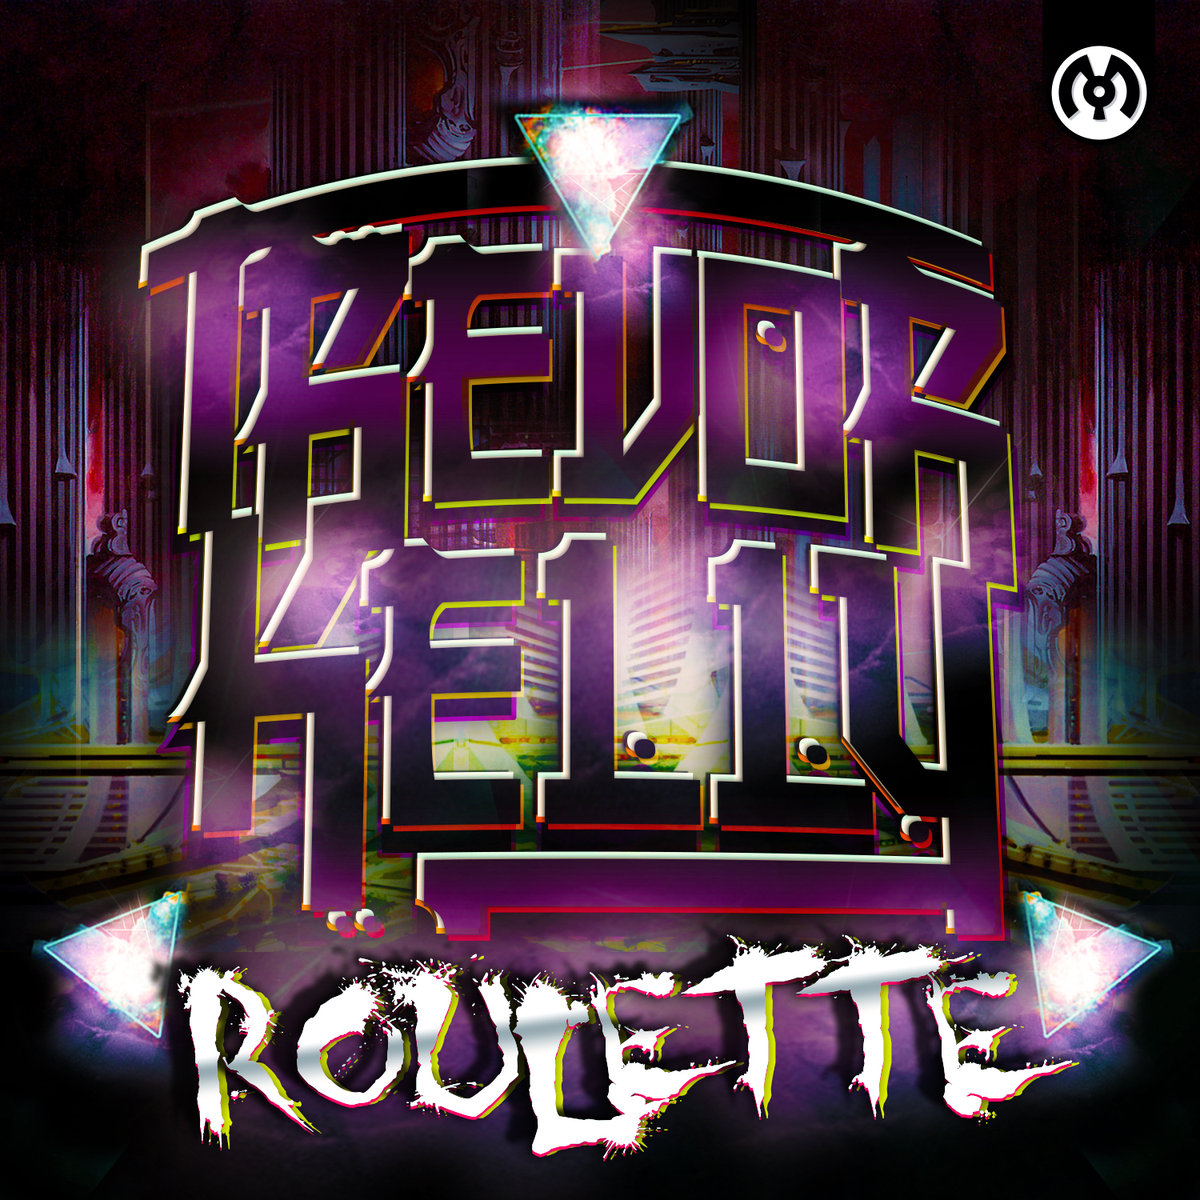 Trevor Kelly & Supplying Demand - Cheat Code @ 'Roulette' album (electronic, dubstep)